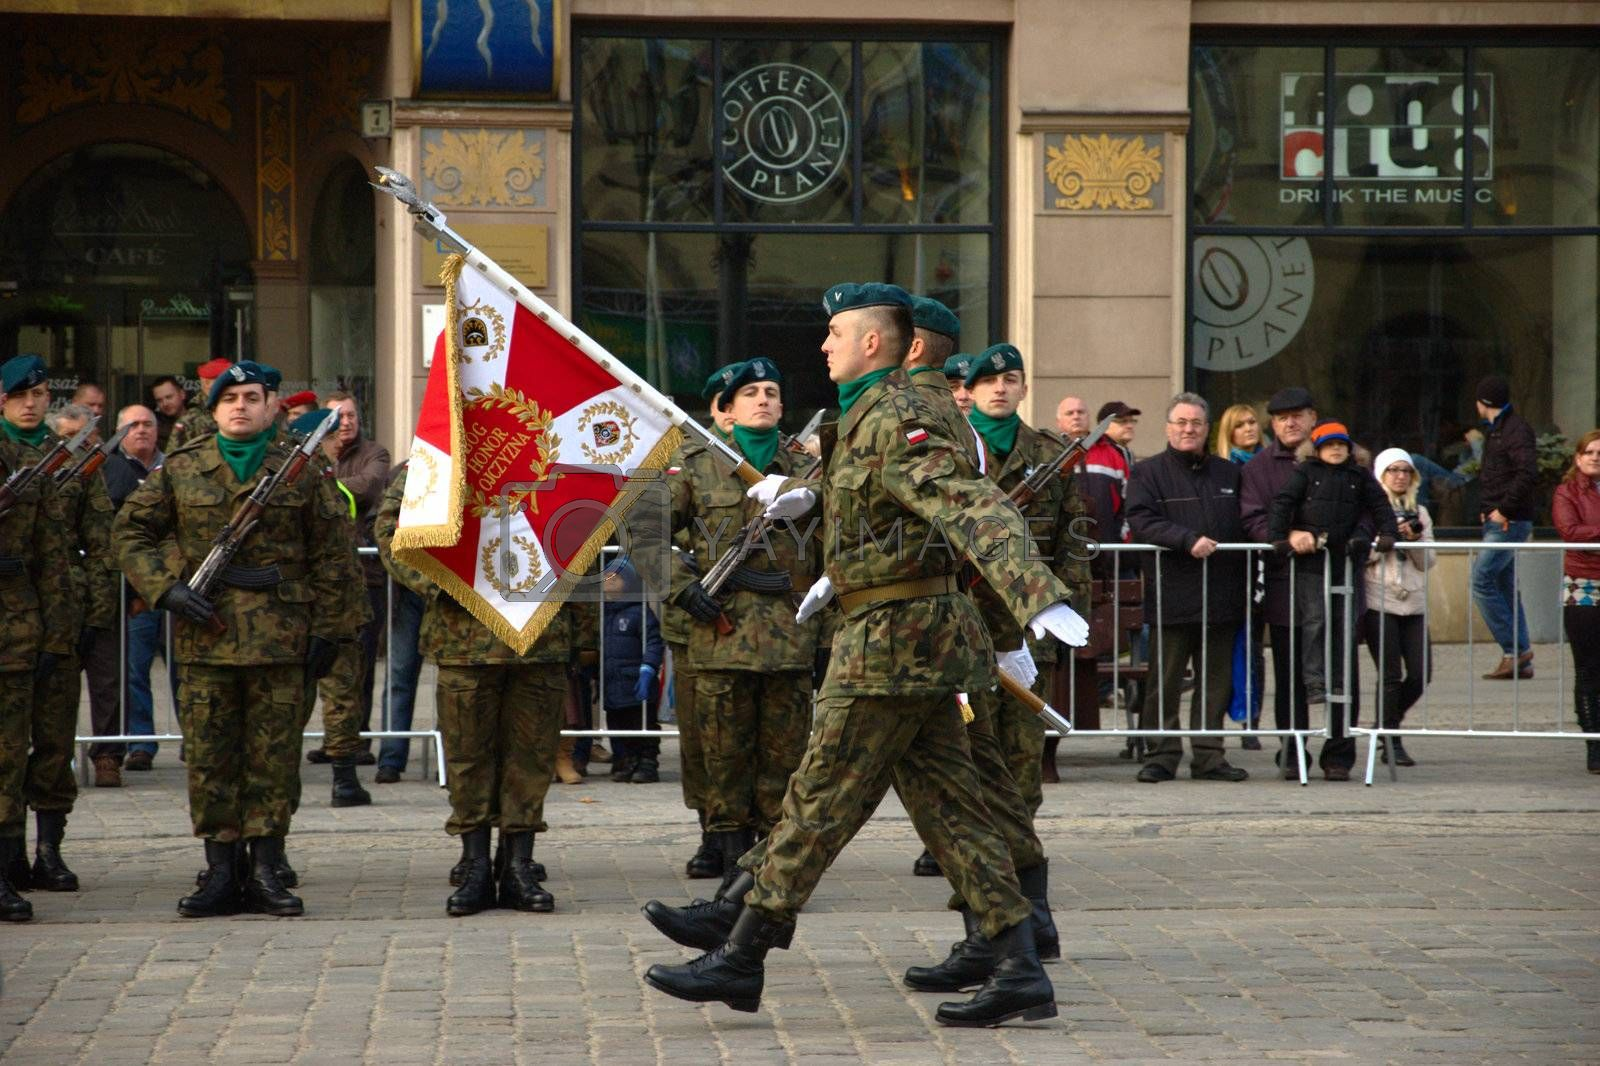 WROCLAW, POLAND - DECEMBER 2: Polish army, engineering training center for troops receives new army banner. Official parade - soldiers present new banner on December 2, 2011.